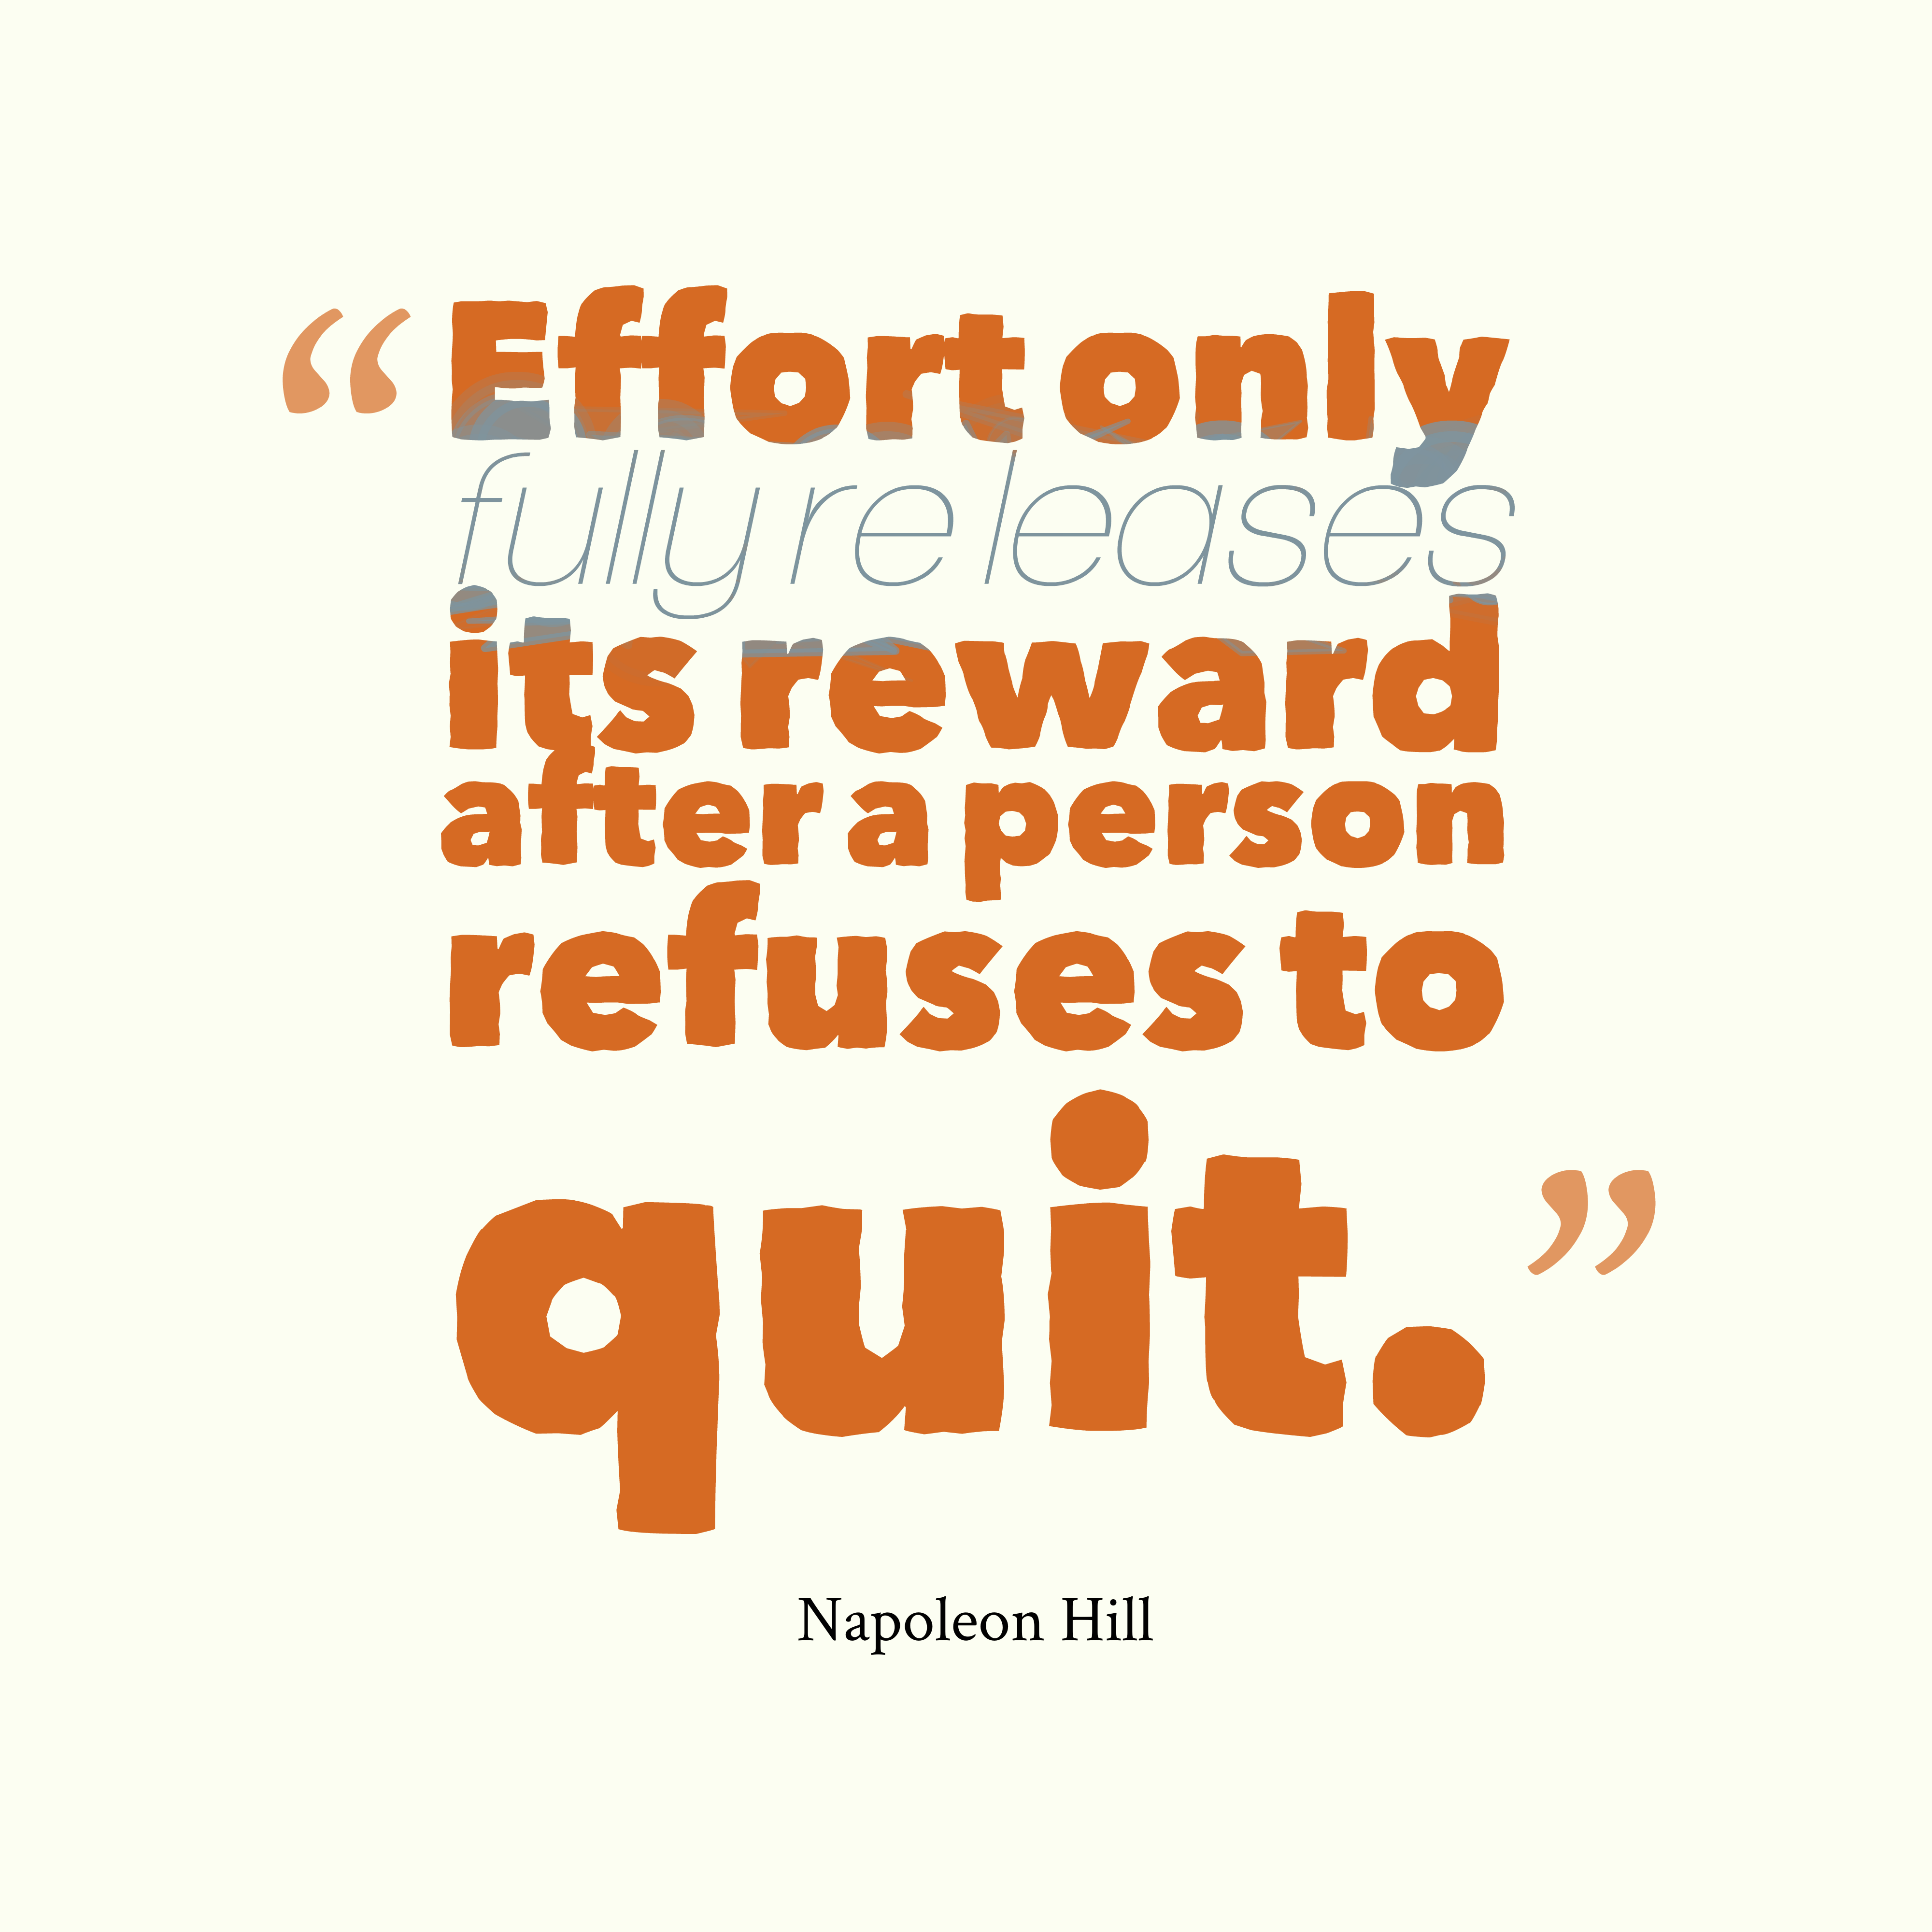 Quotes Effort Picture Napoleon Hill Quote About Effort Quotescover